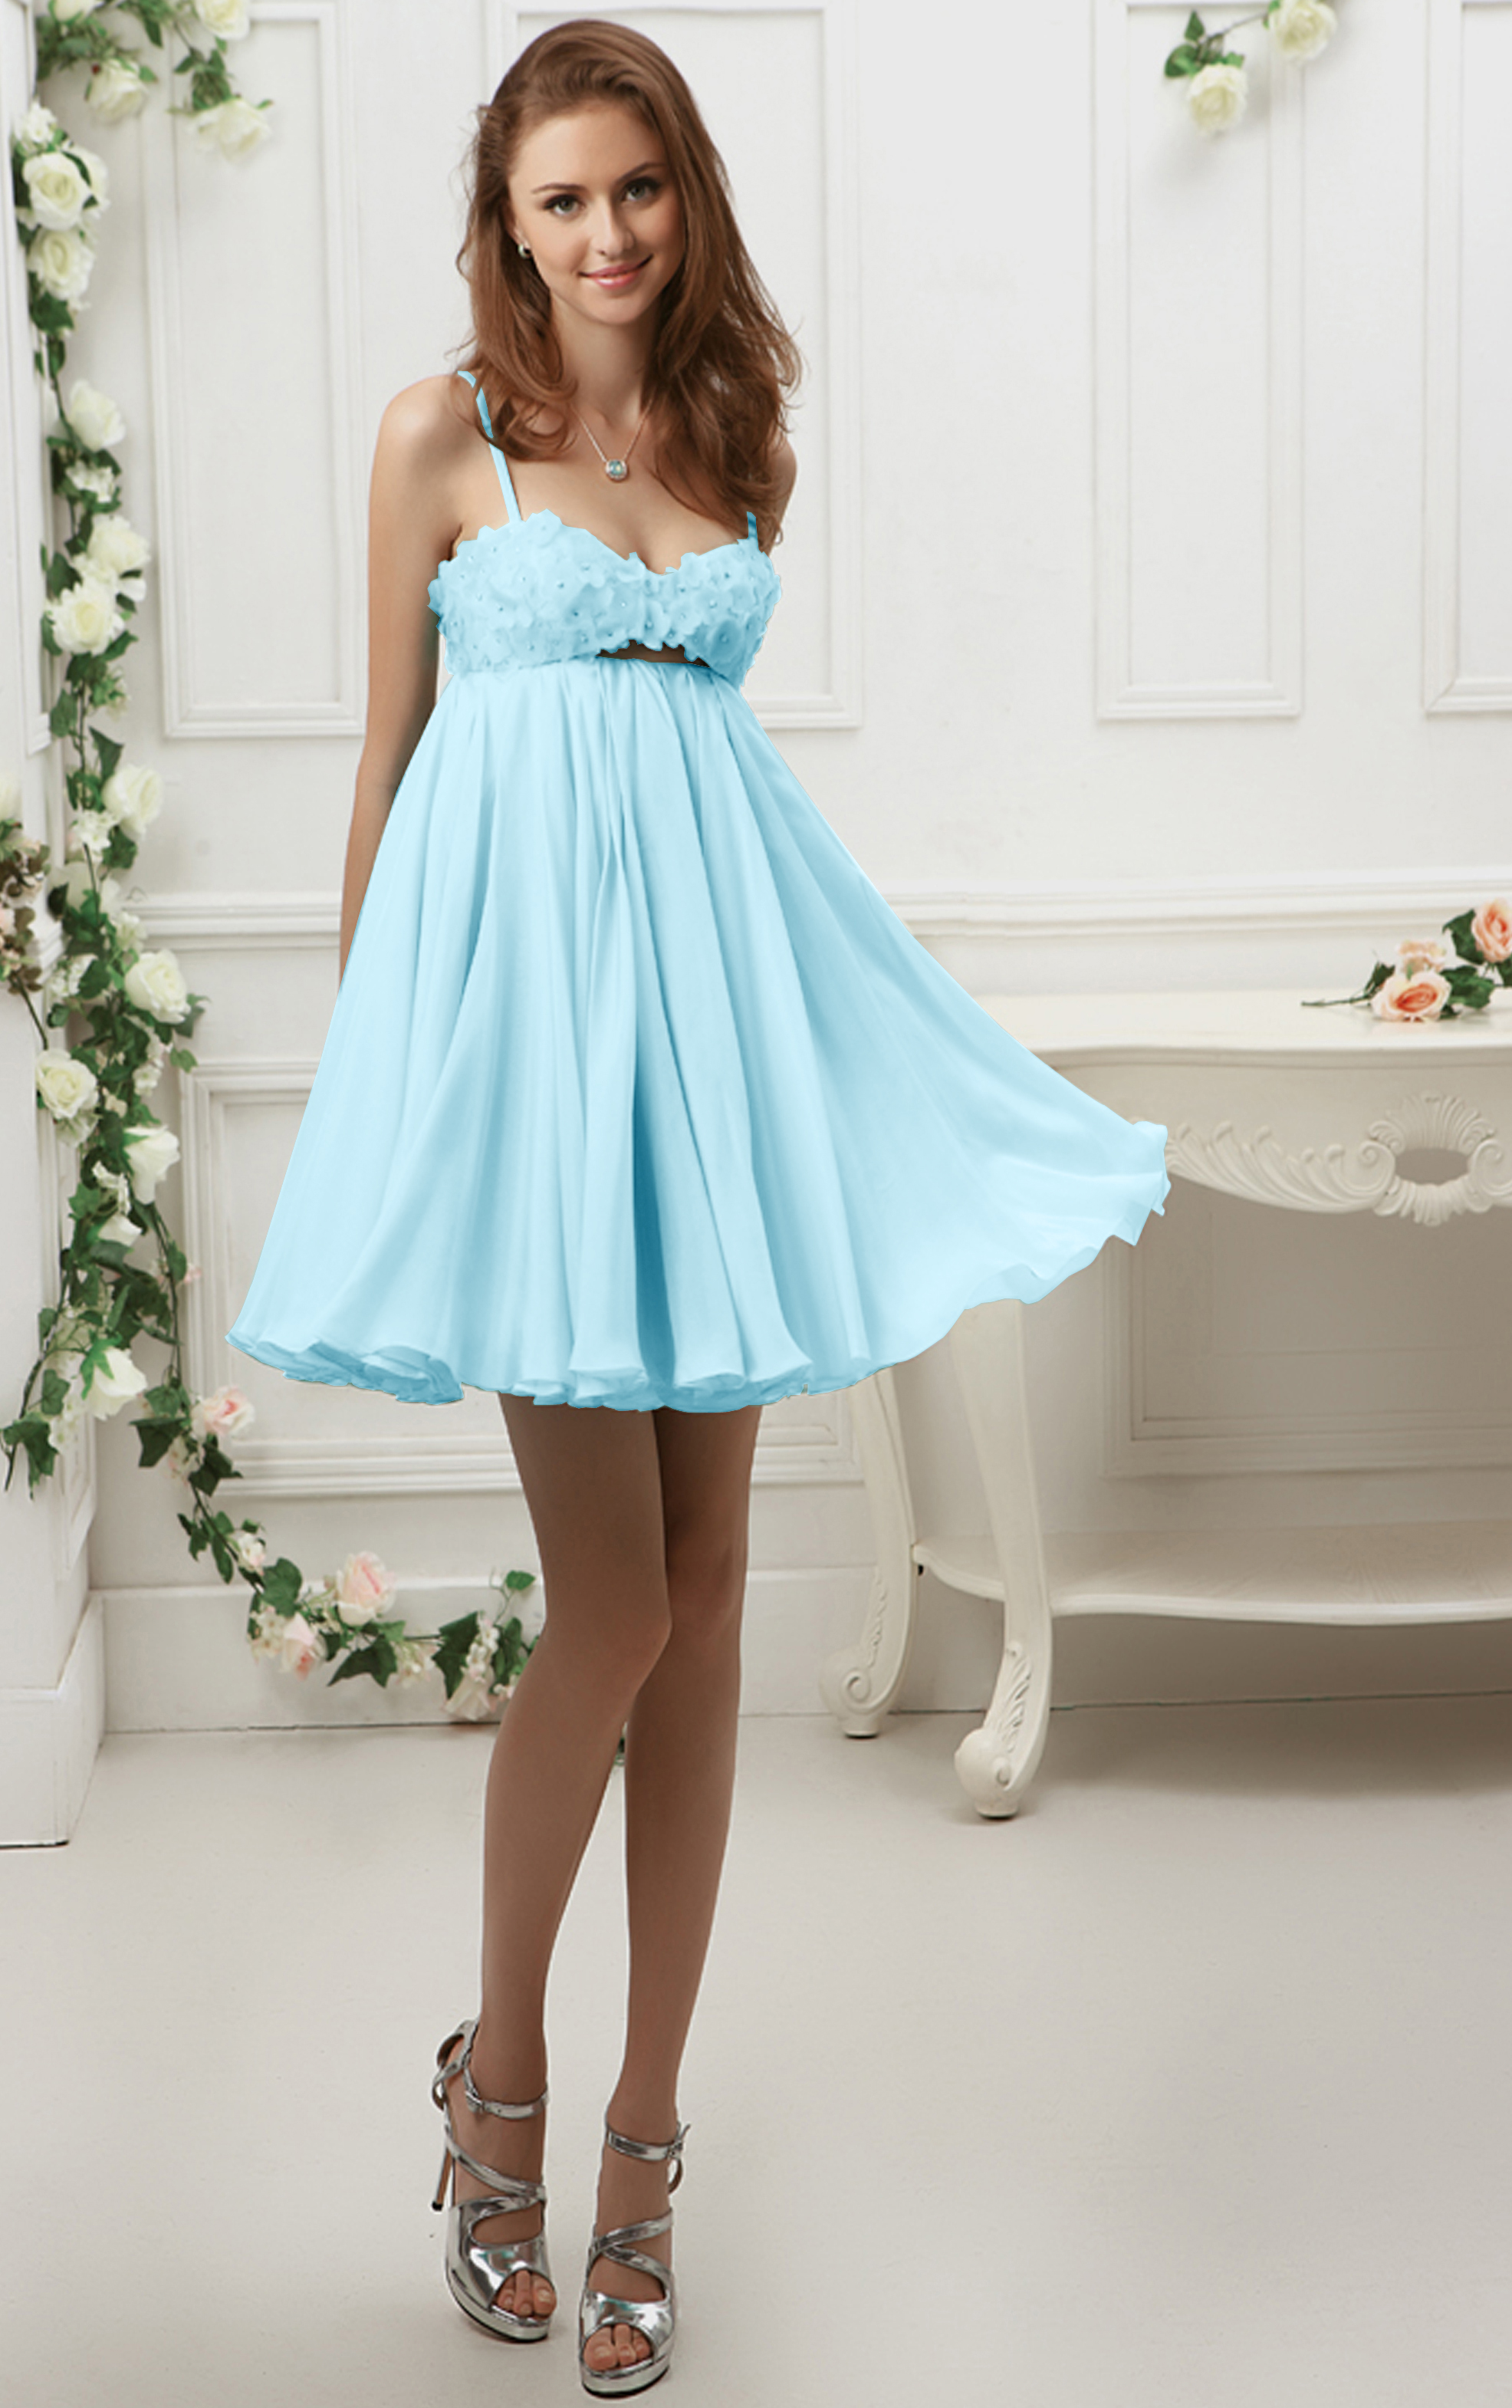 Spaghetti Straps Short Backless Chiffon Prom Dress with Flowers